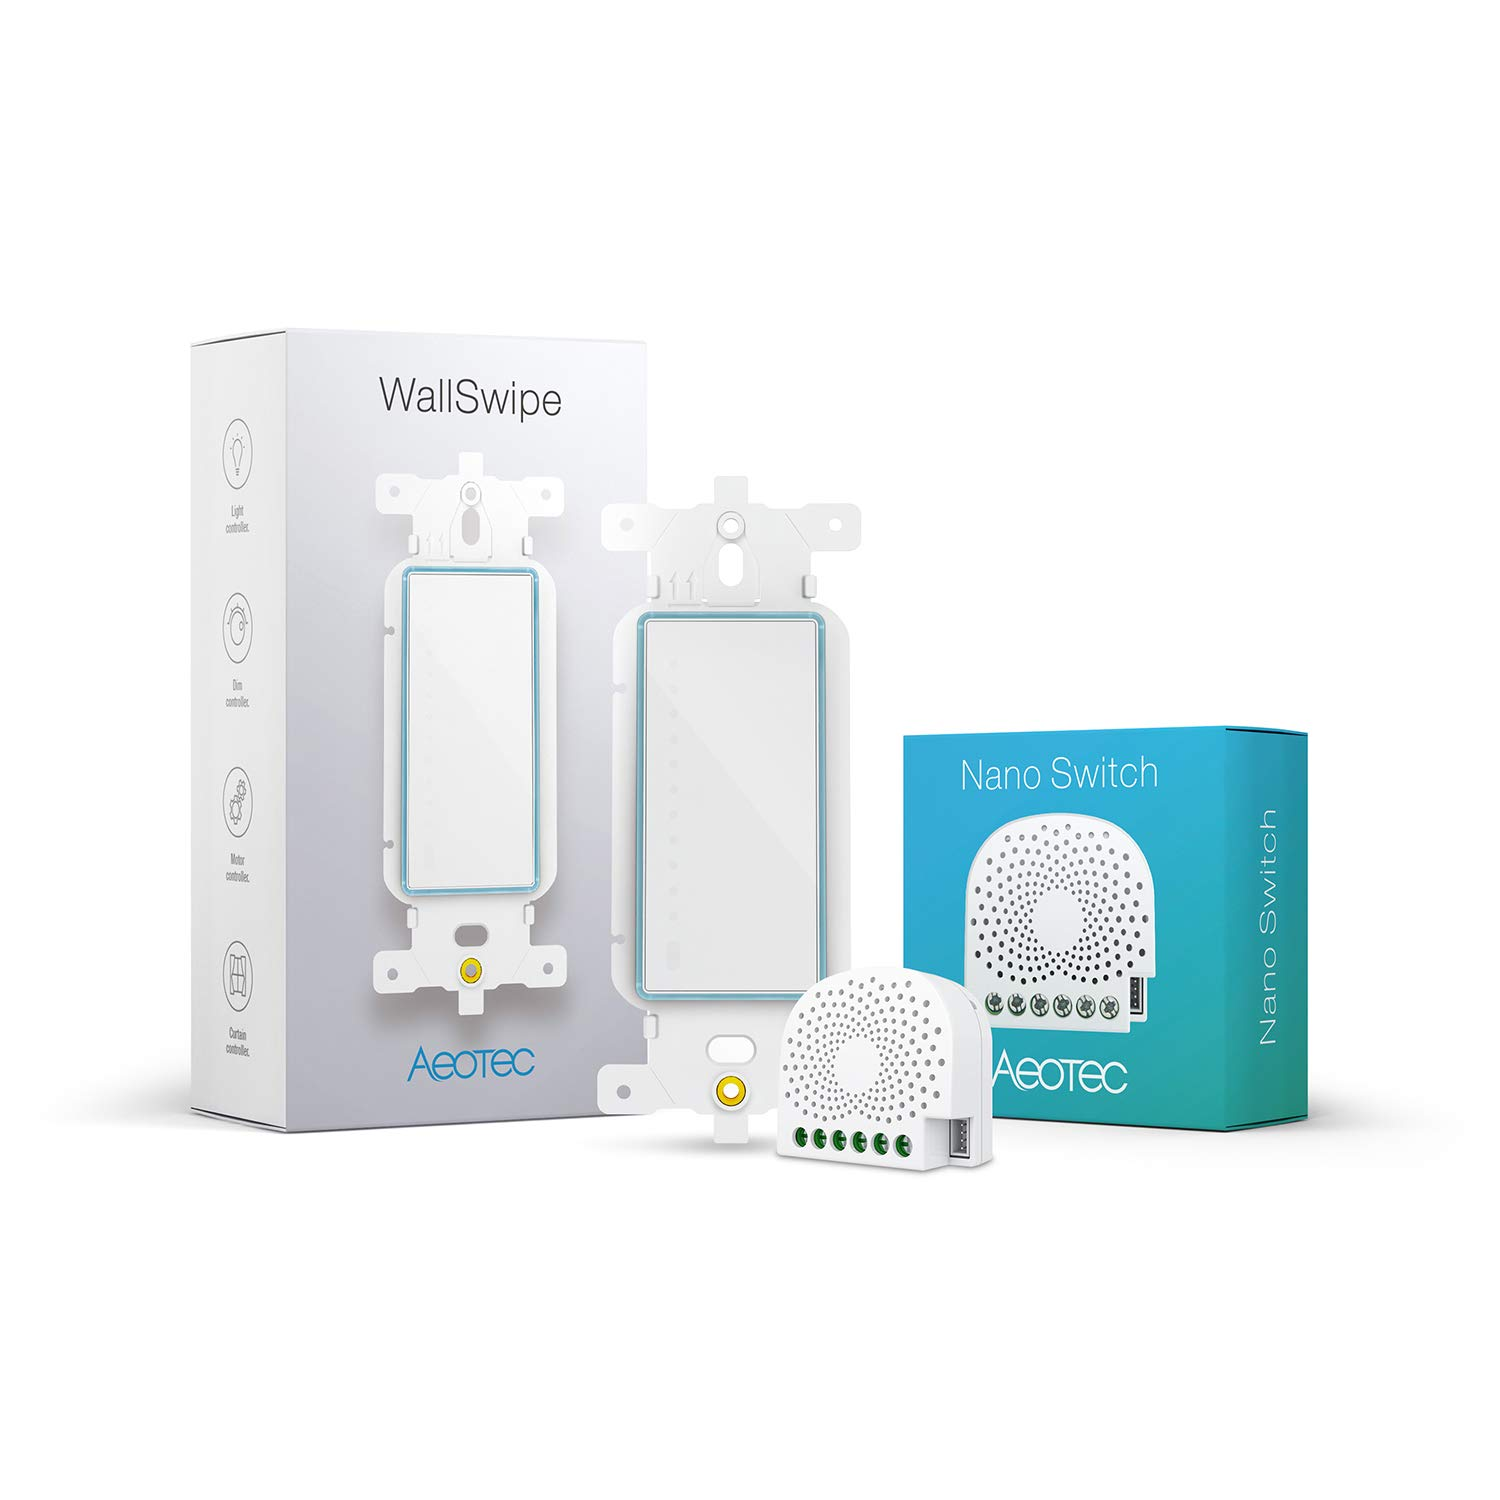 Aeotec Smart in-Wall Switch kit, Nano Switch & WallSwipe, Z-Wave Plus in-Wall Zwave Switch with Wall Panel Controller